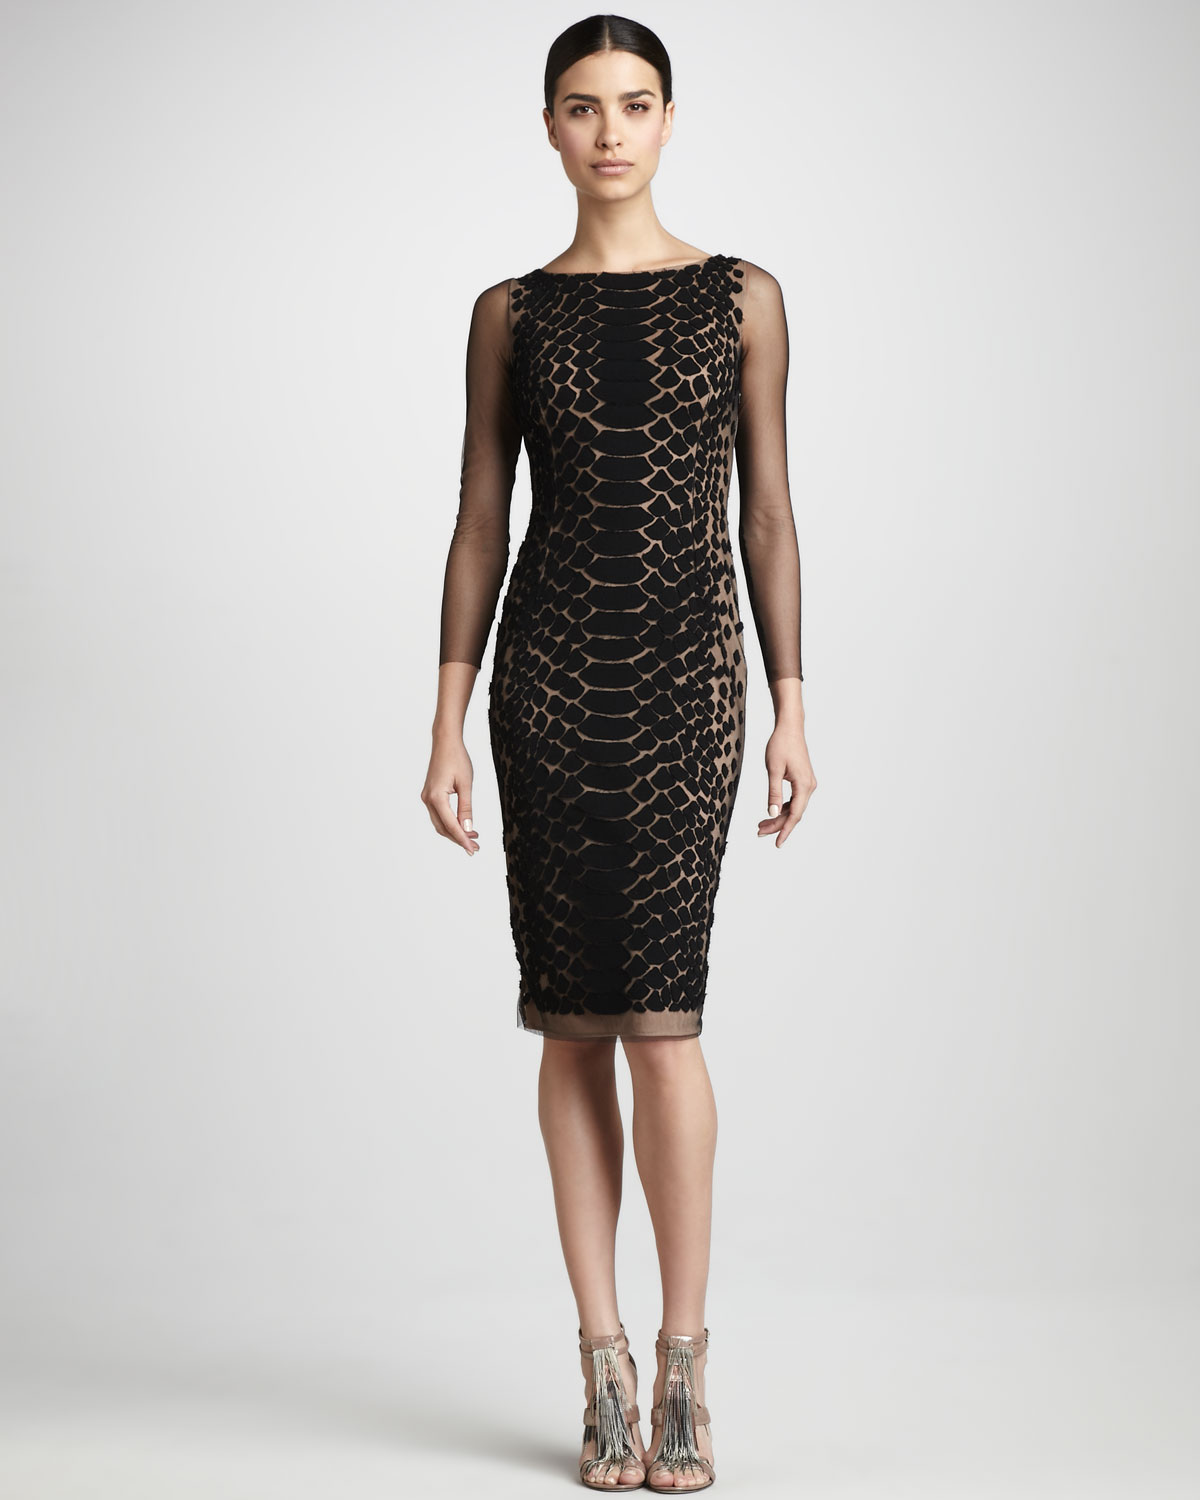 Lyst - Carmen Marc Valvo Snakeskinprint Cocktail Dress in Black